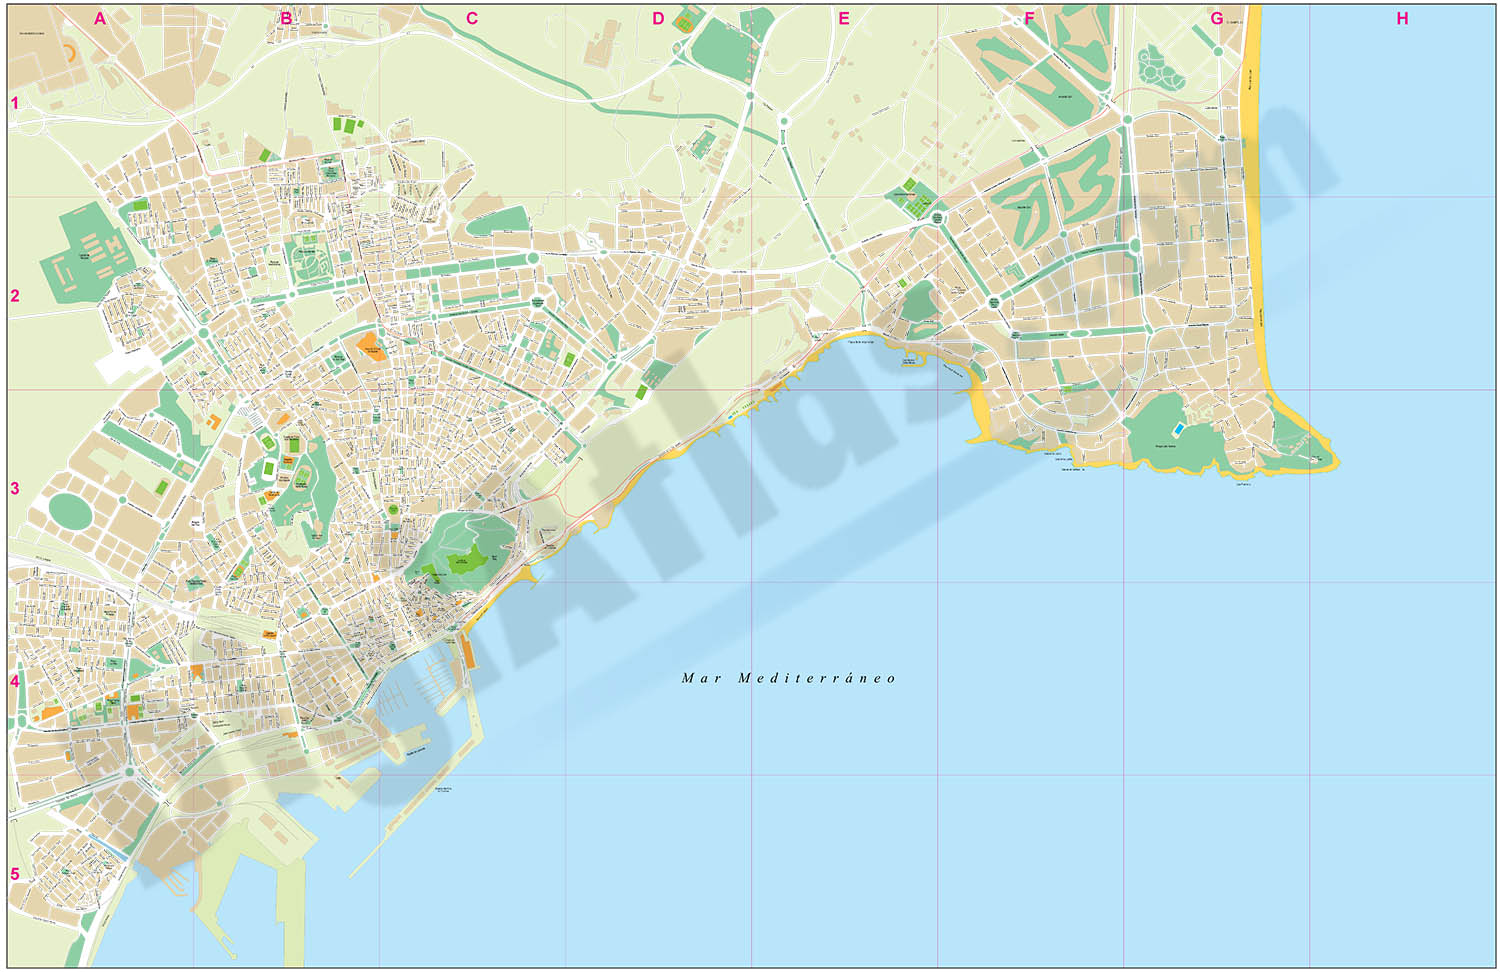 Alicante city map